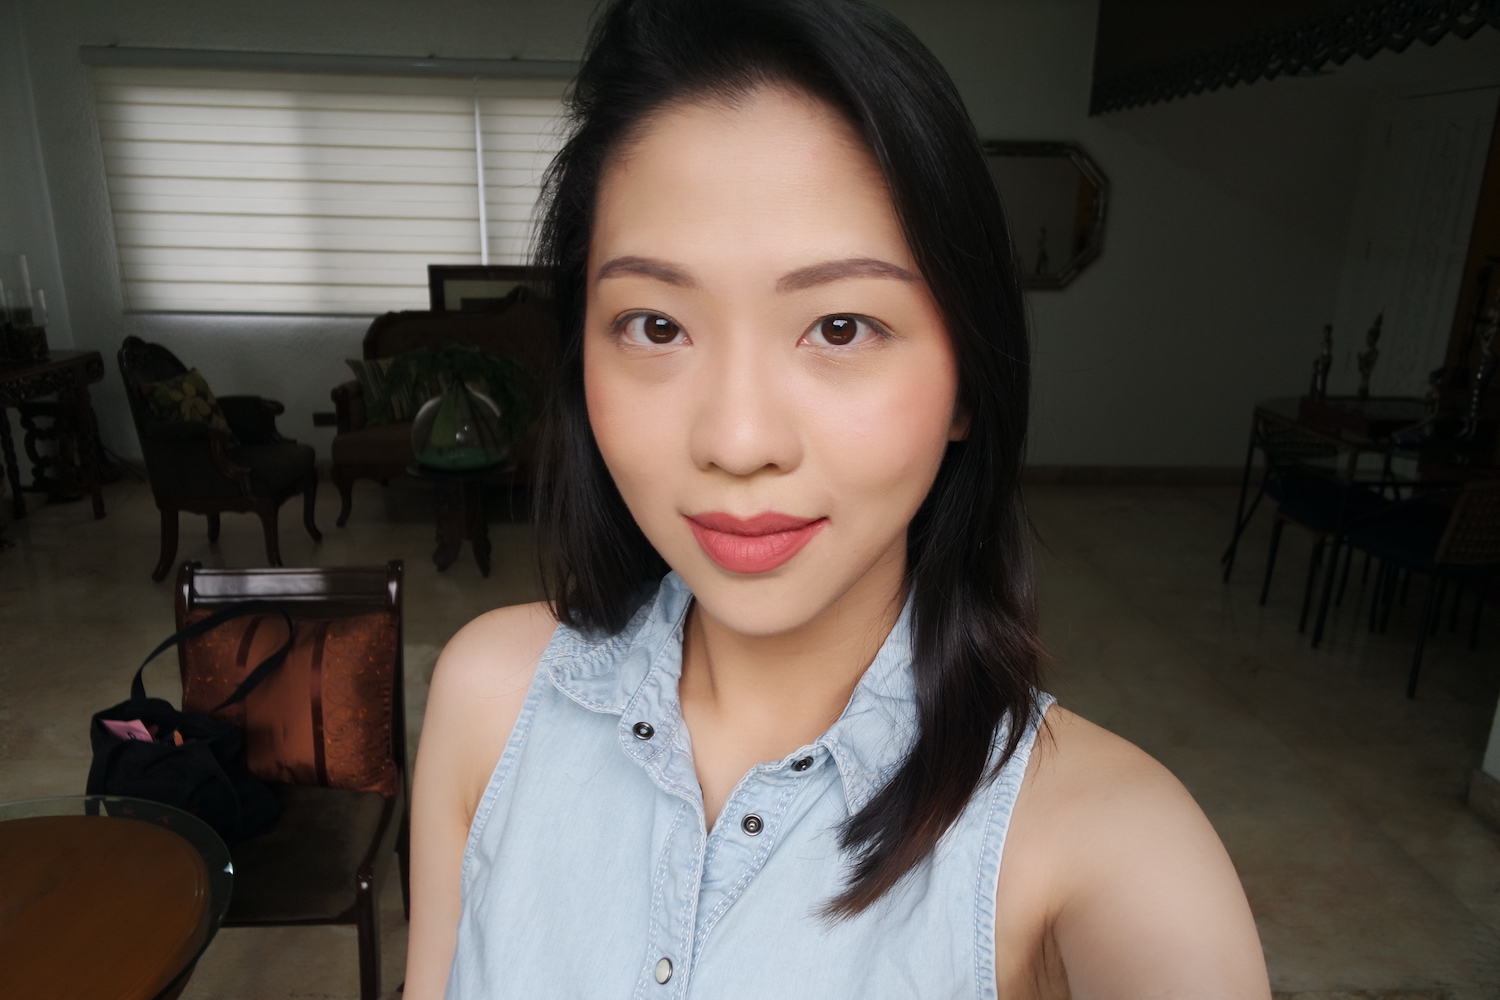 FOTD in Long-Lasting Liquid Matte Lipstick in Sophisticated